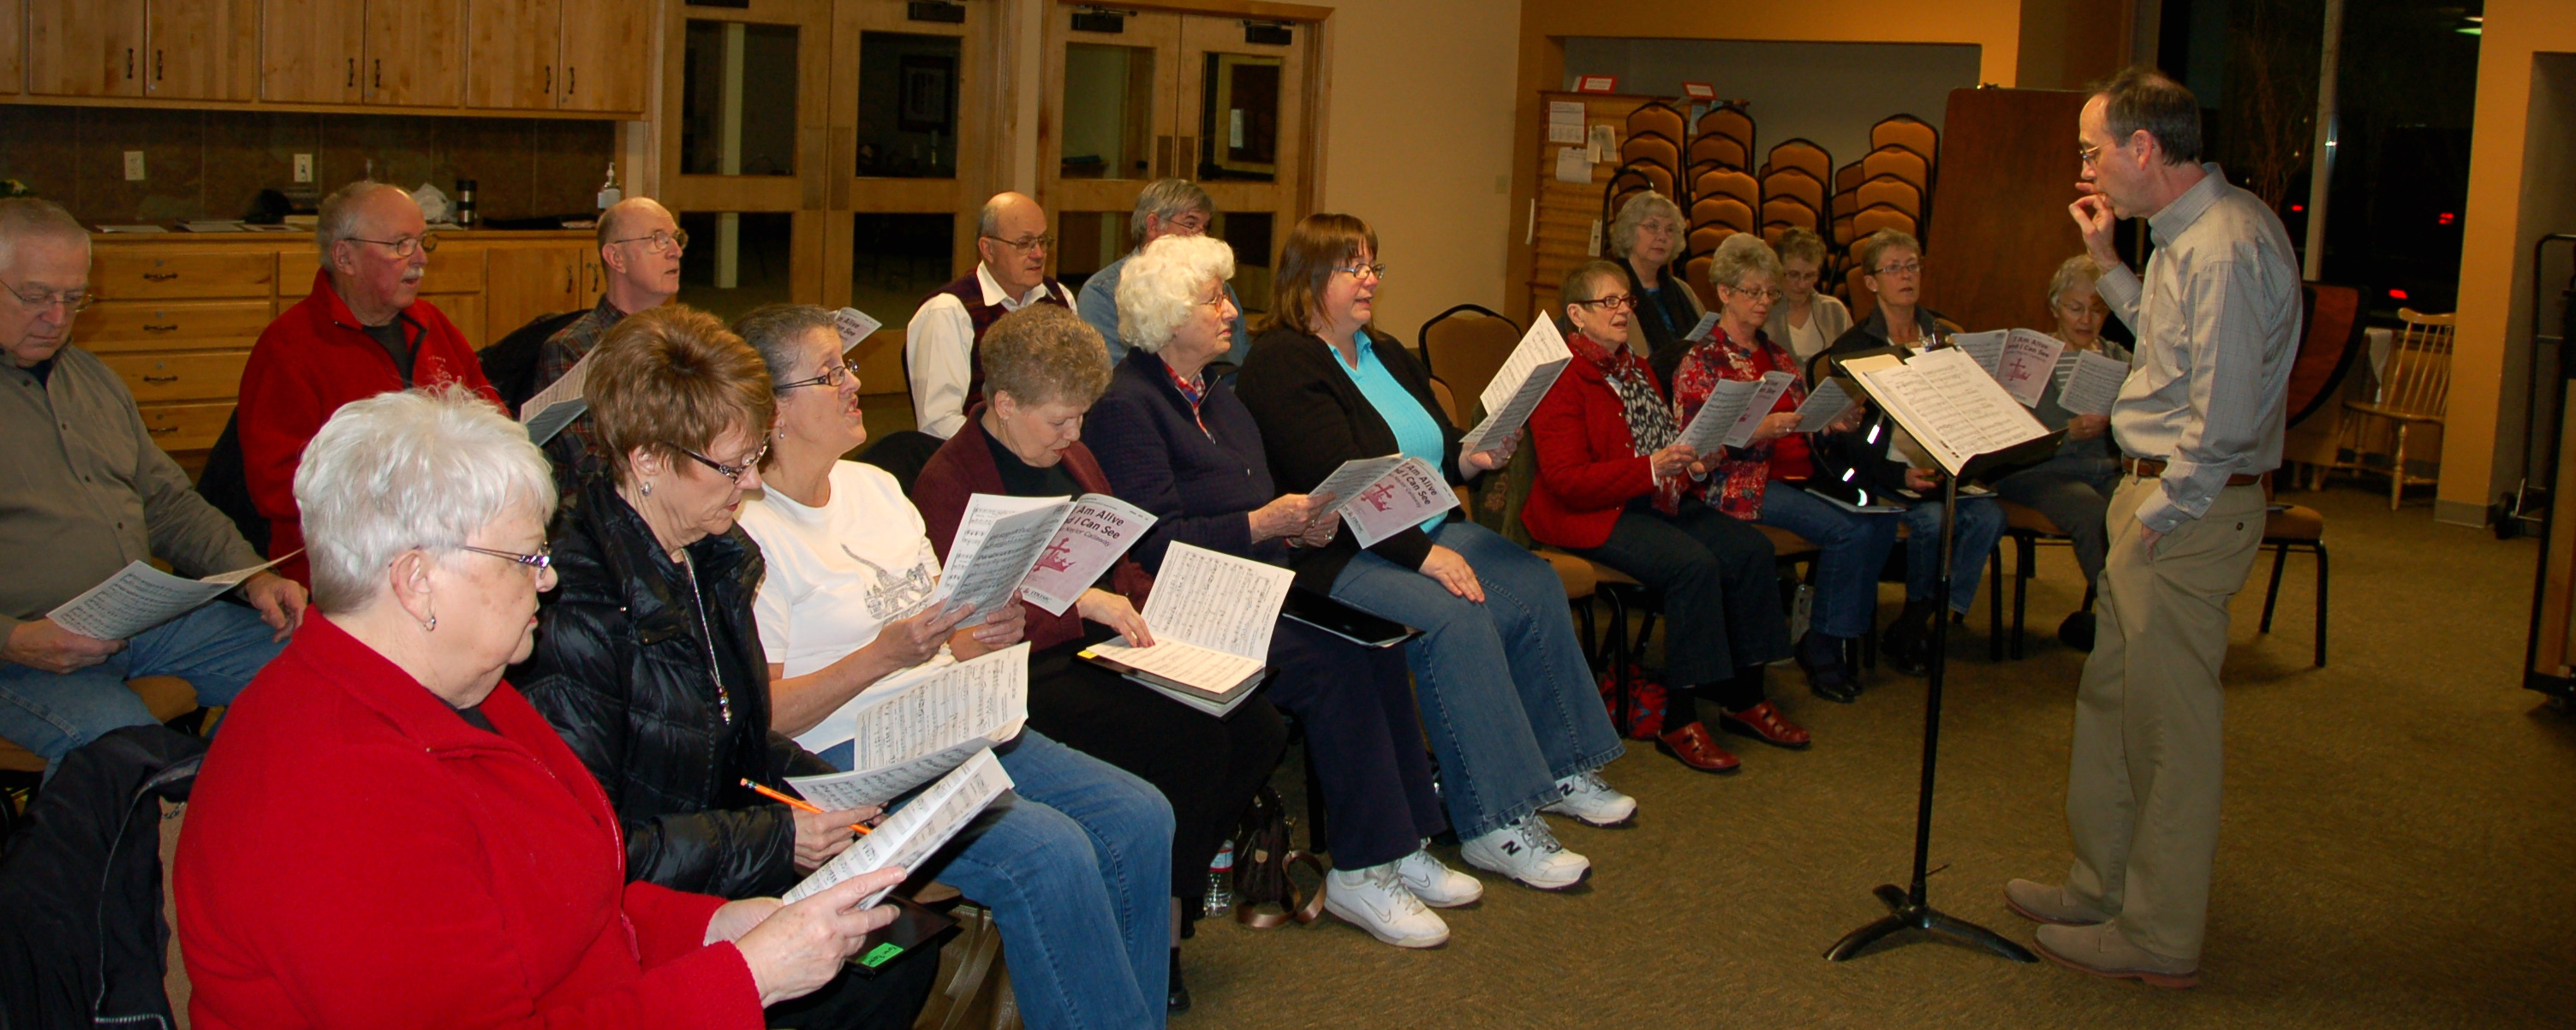 Church choir rehearsal